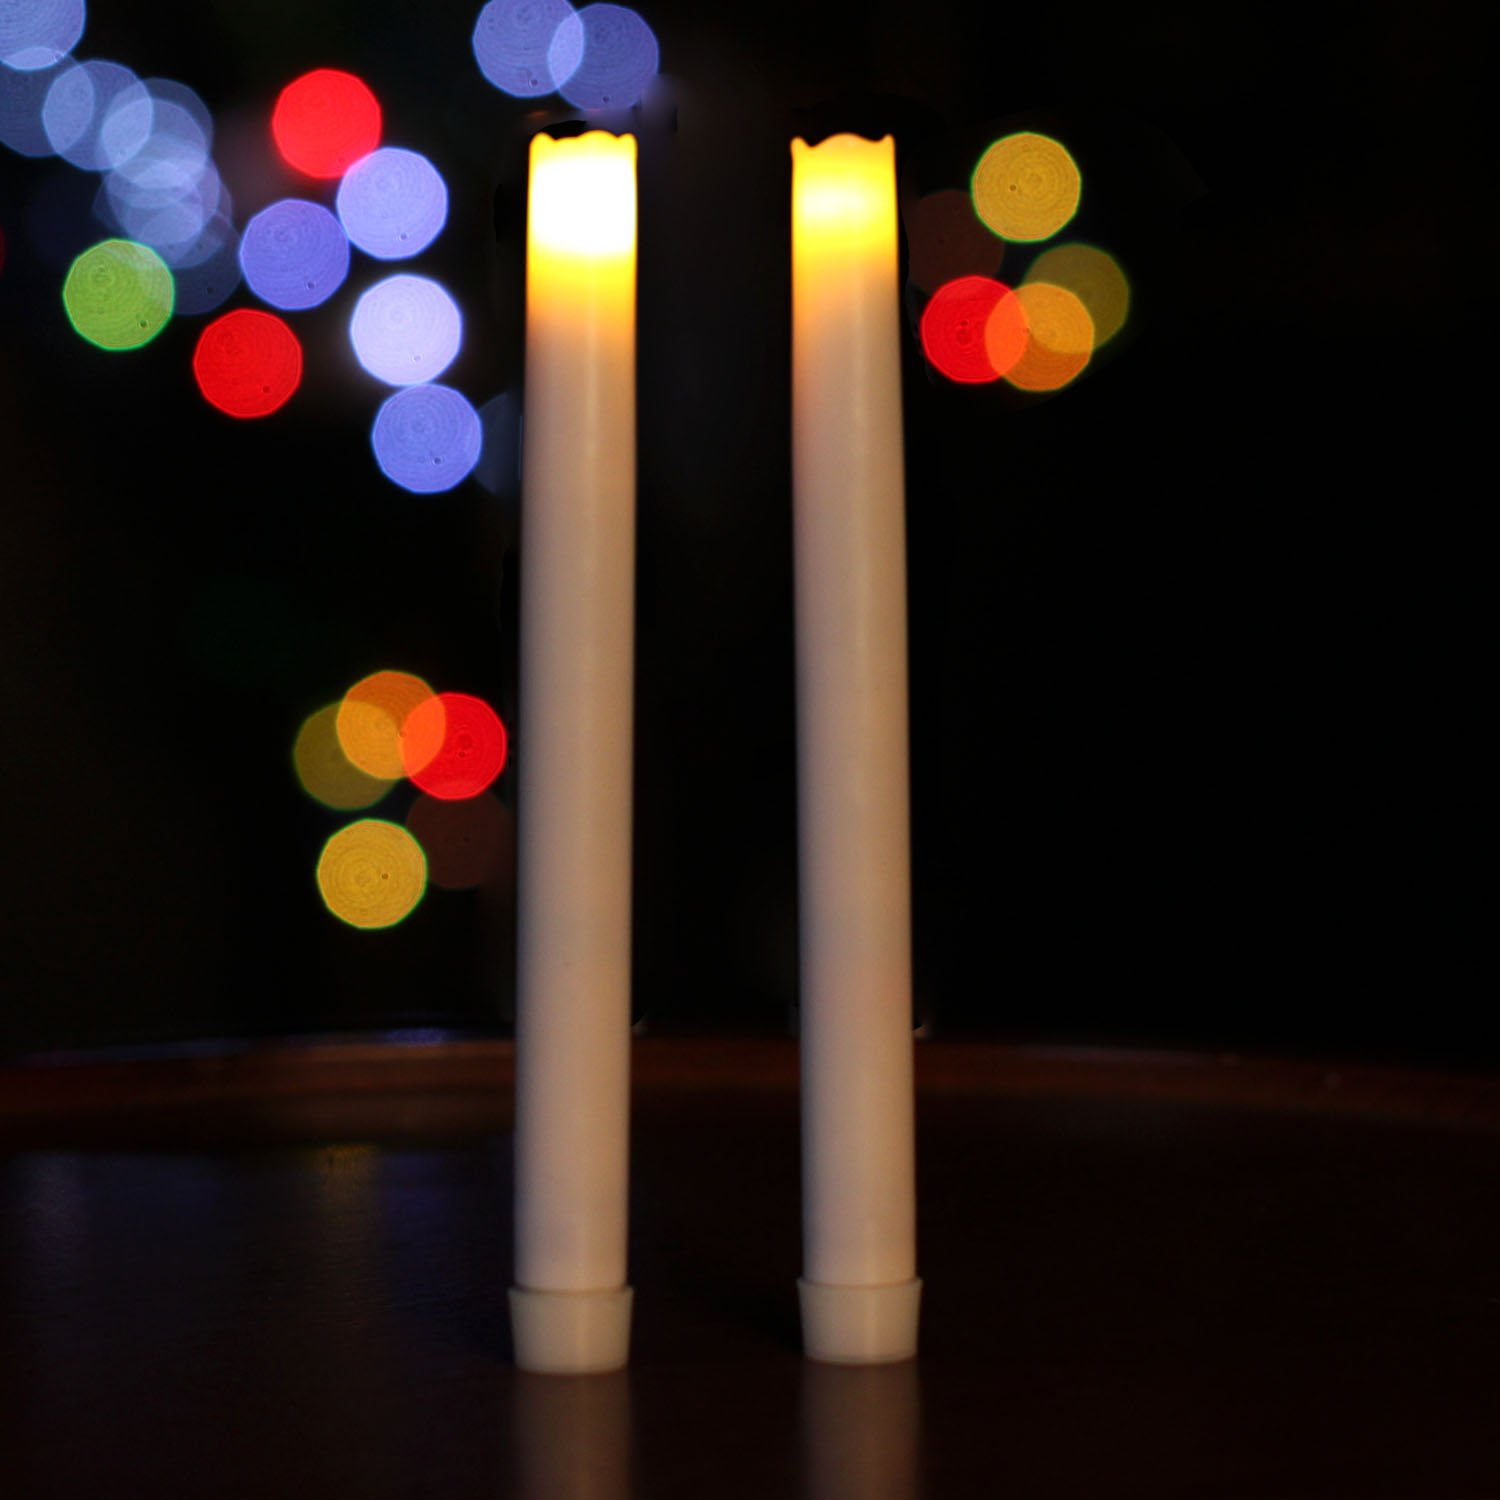 9'' Electric Led Taper Candles with Timer, Battery Operated Real Wax Candle for Home and Parties, White, Pack of 2